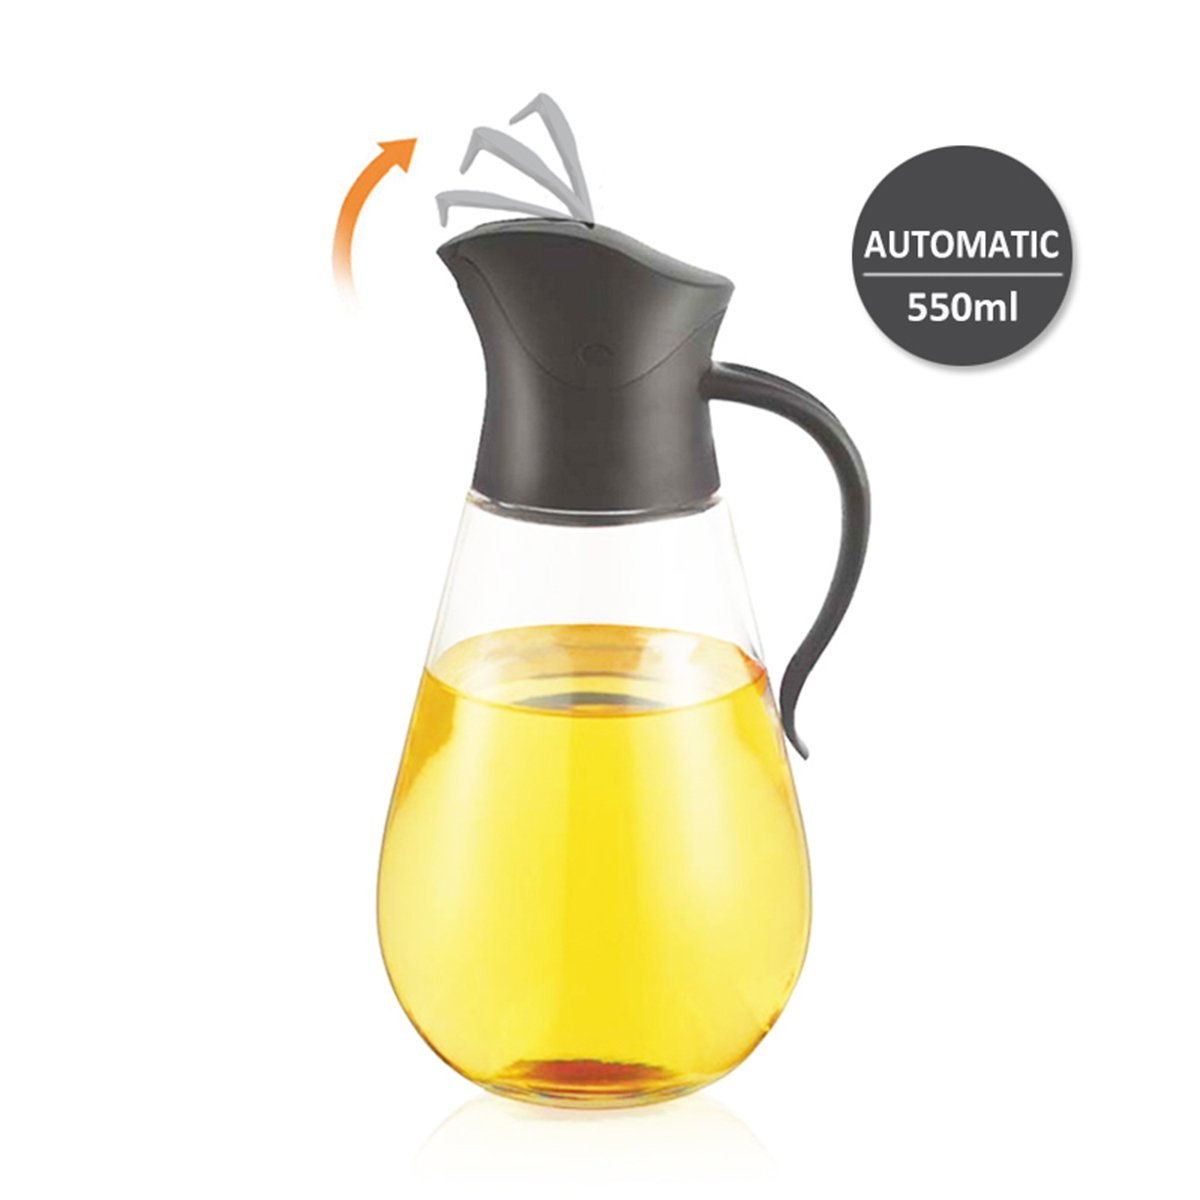 Olive Oil Dispenser,Cooking Container Bottle Glass Non-Drip Kitchen Oil Dispenser Bottle Vinegar Bottle Barbecue Marinade Dispenser Bottle With Non-Slip Handle for Kitchen